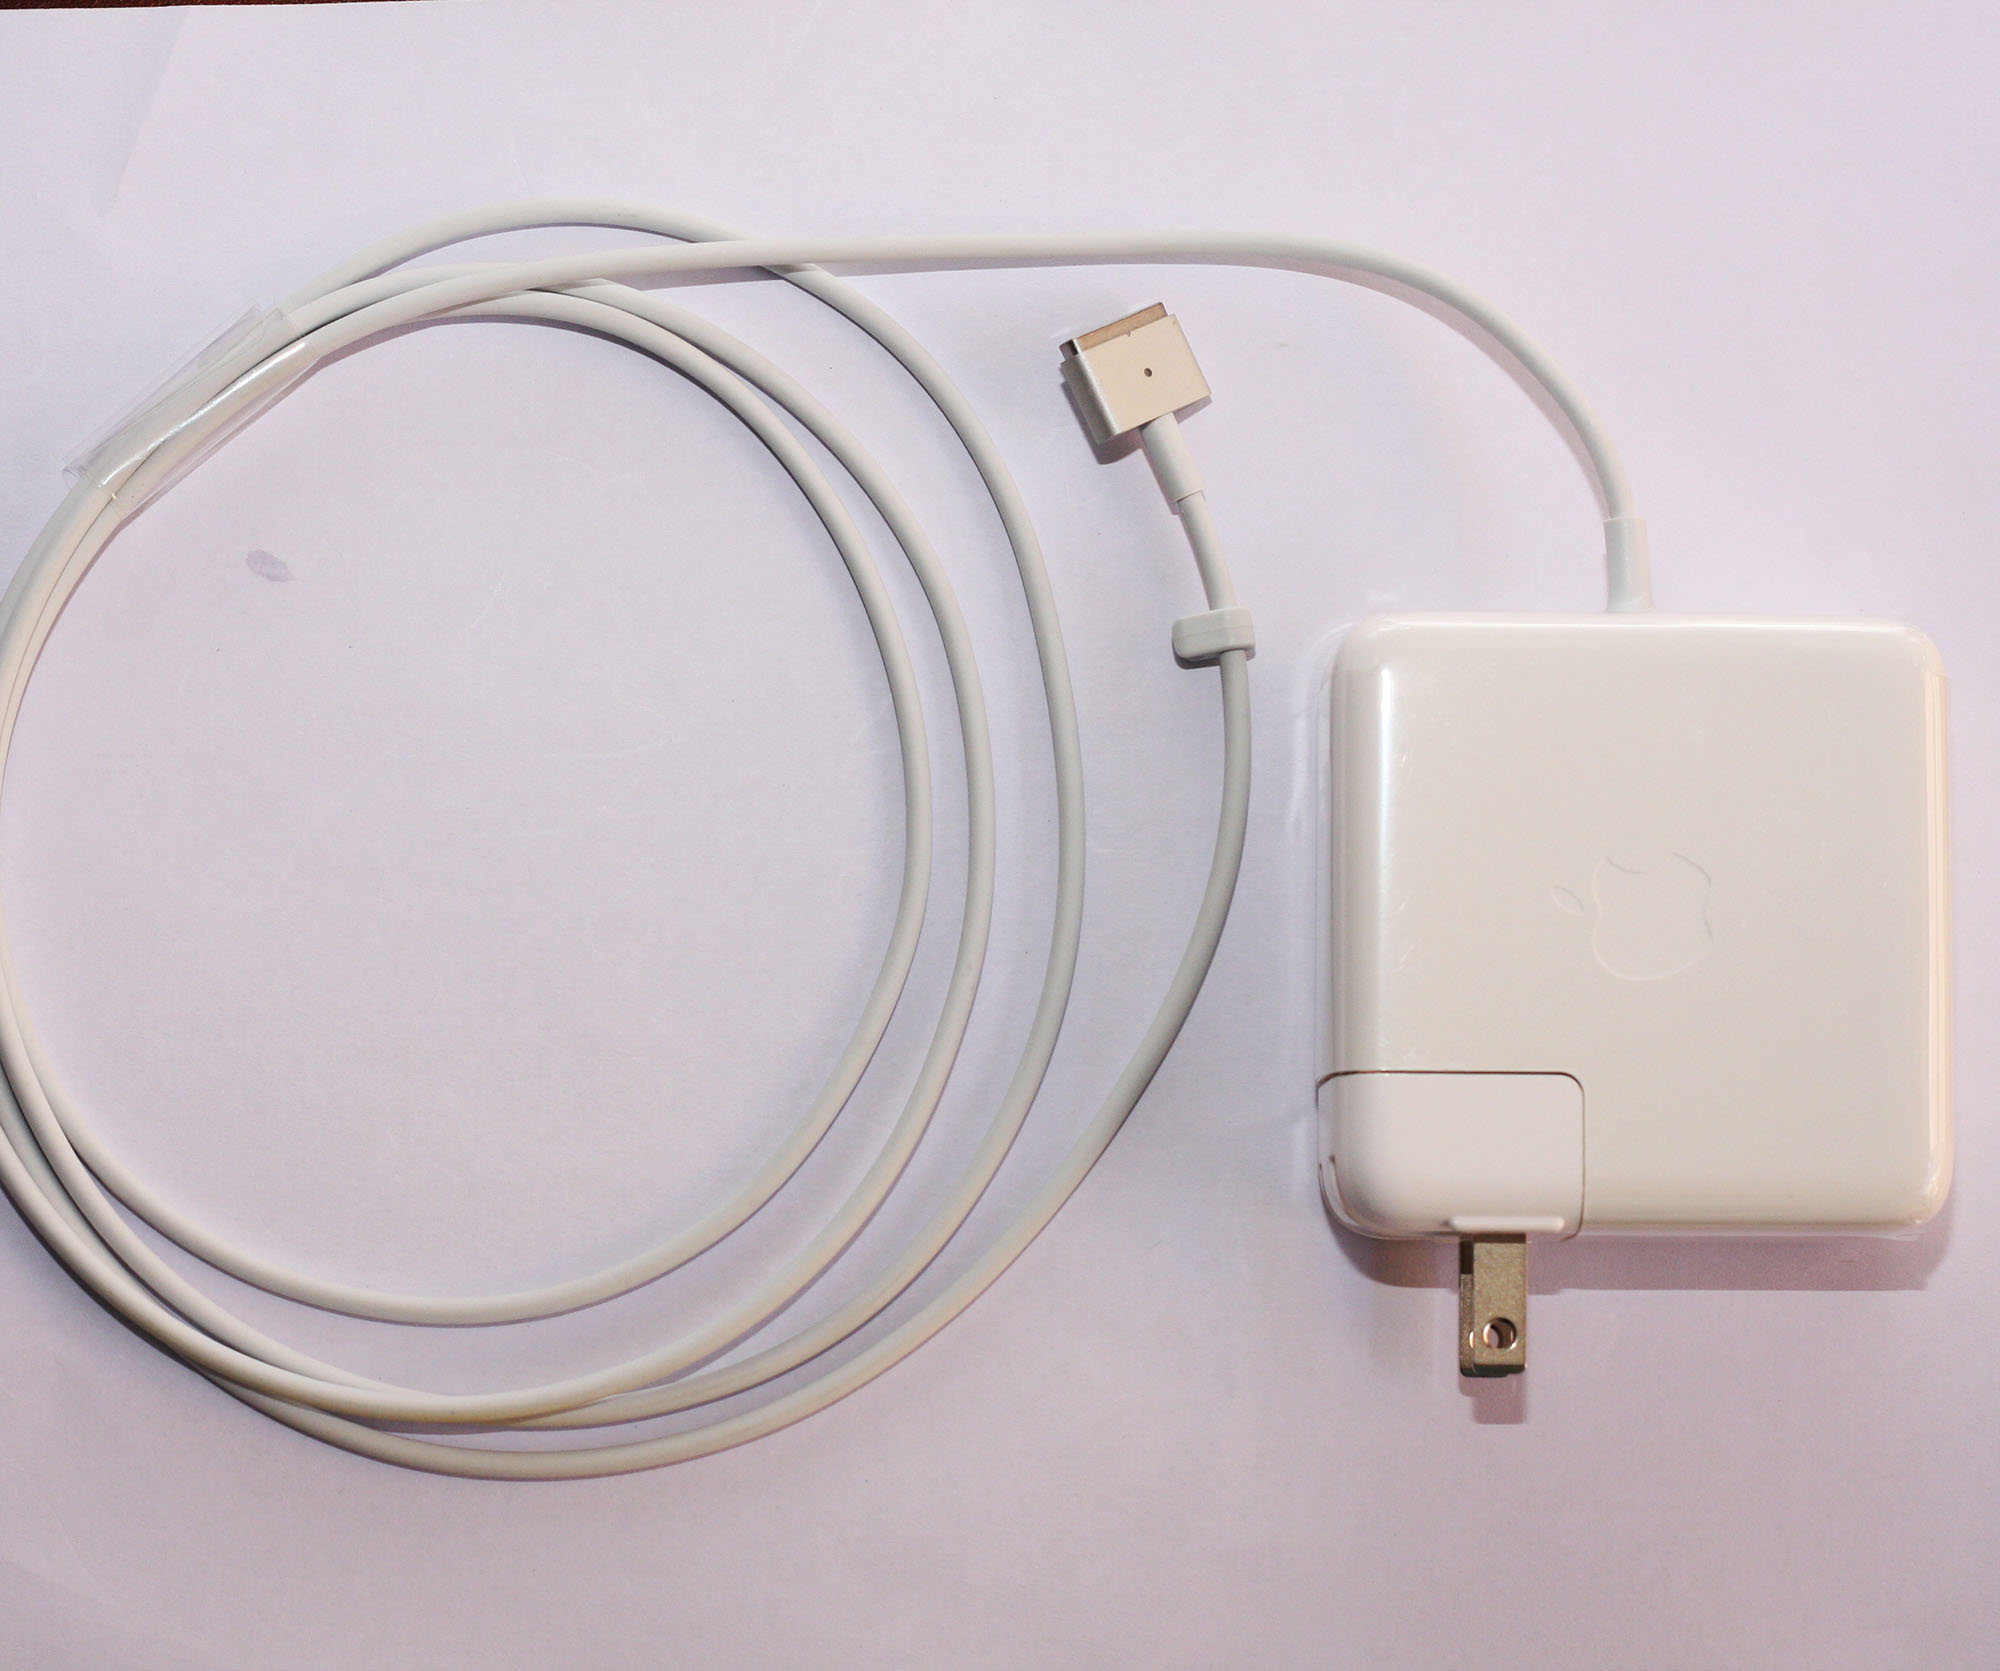 Sạc Macbook 60W 2012